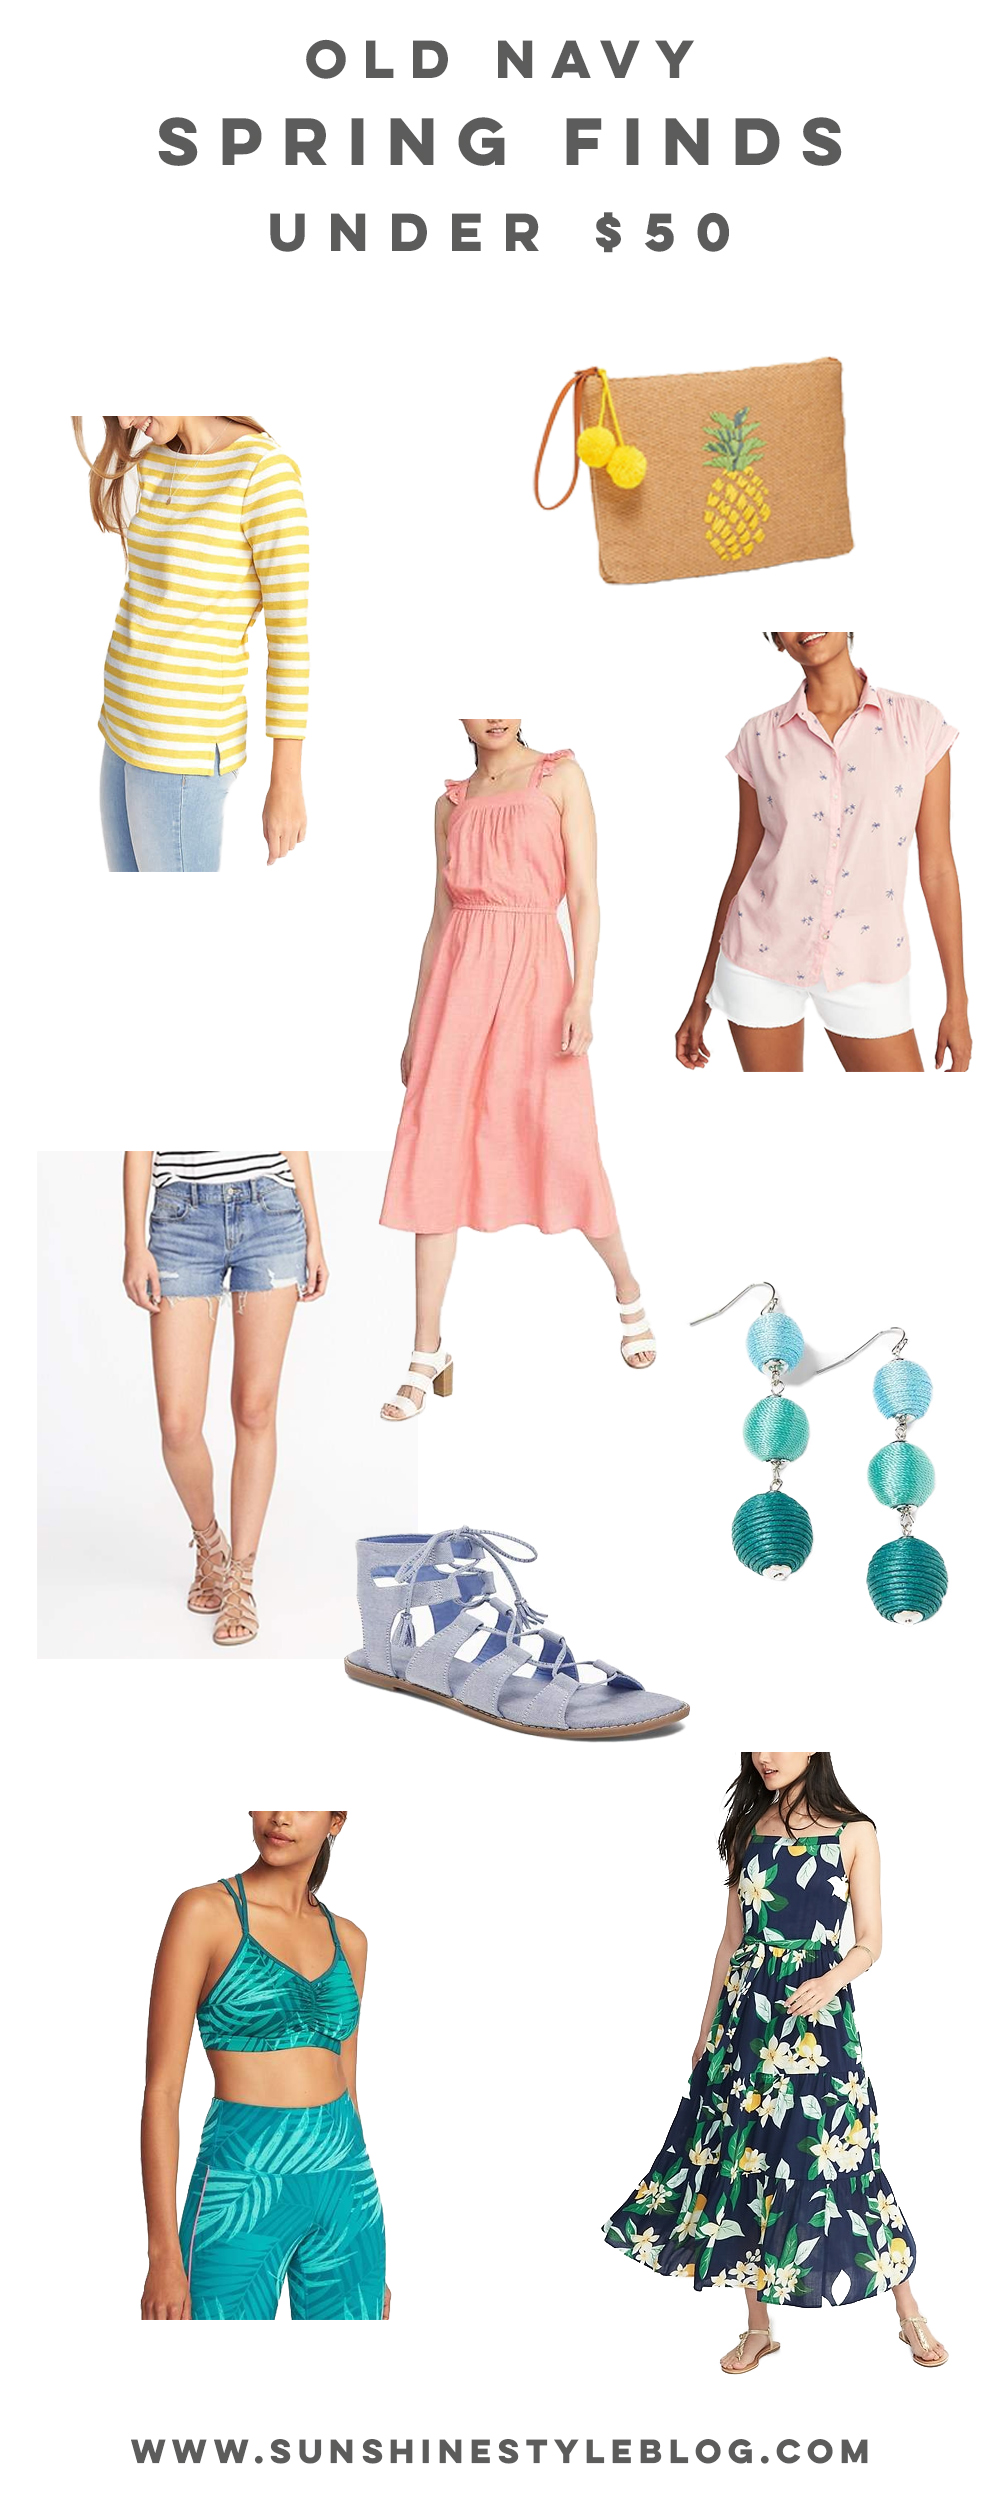 The Best Old Navy Spring Finds Under $50. If your on a budget, these cute spring pieces won't break the bank.